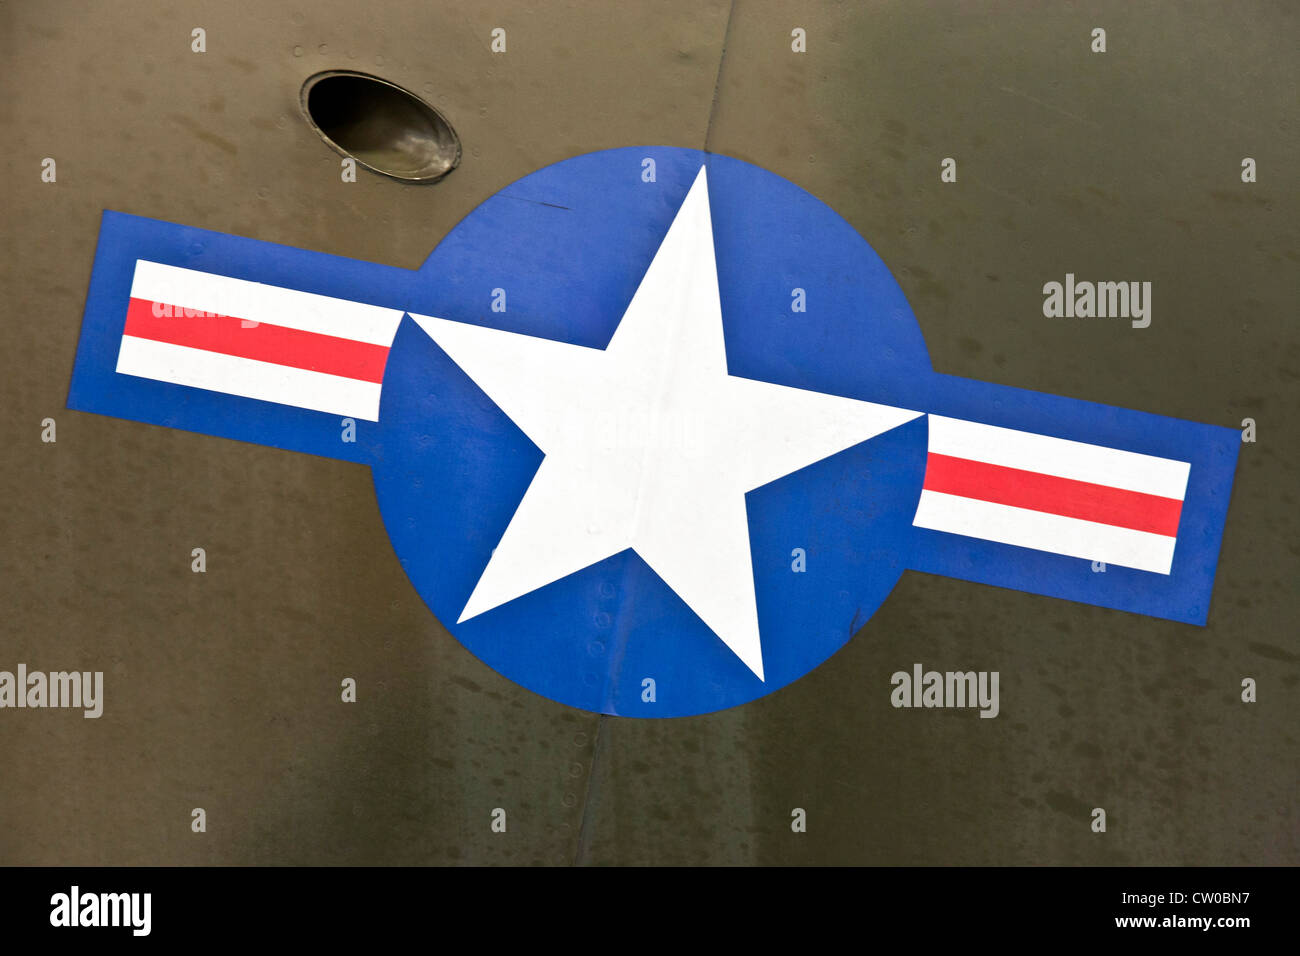 US Navy military aircraft logo roundel over camouflage paint on side of Douglas A-1 proud American Korean War skyrider - Stock Image